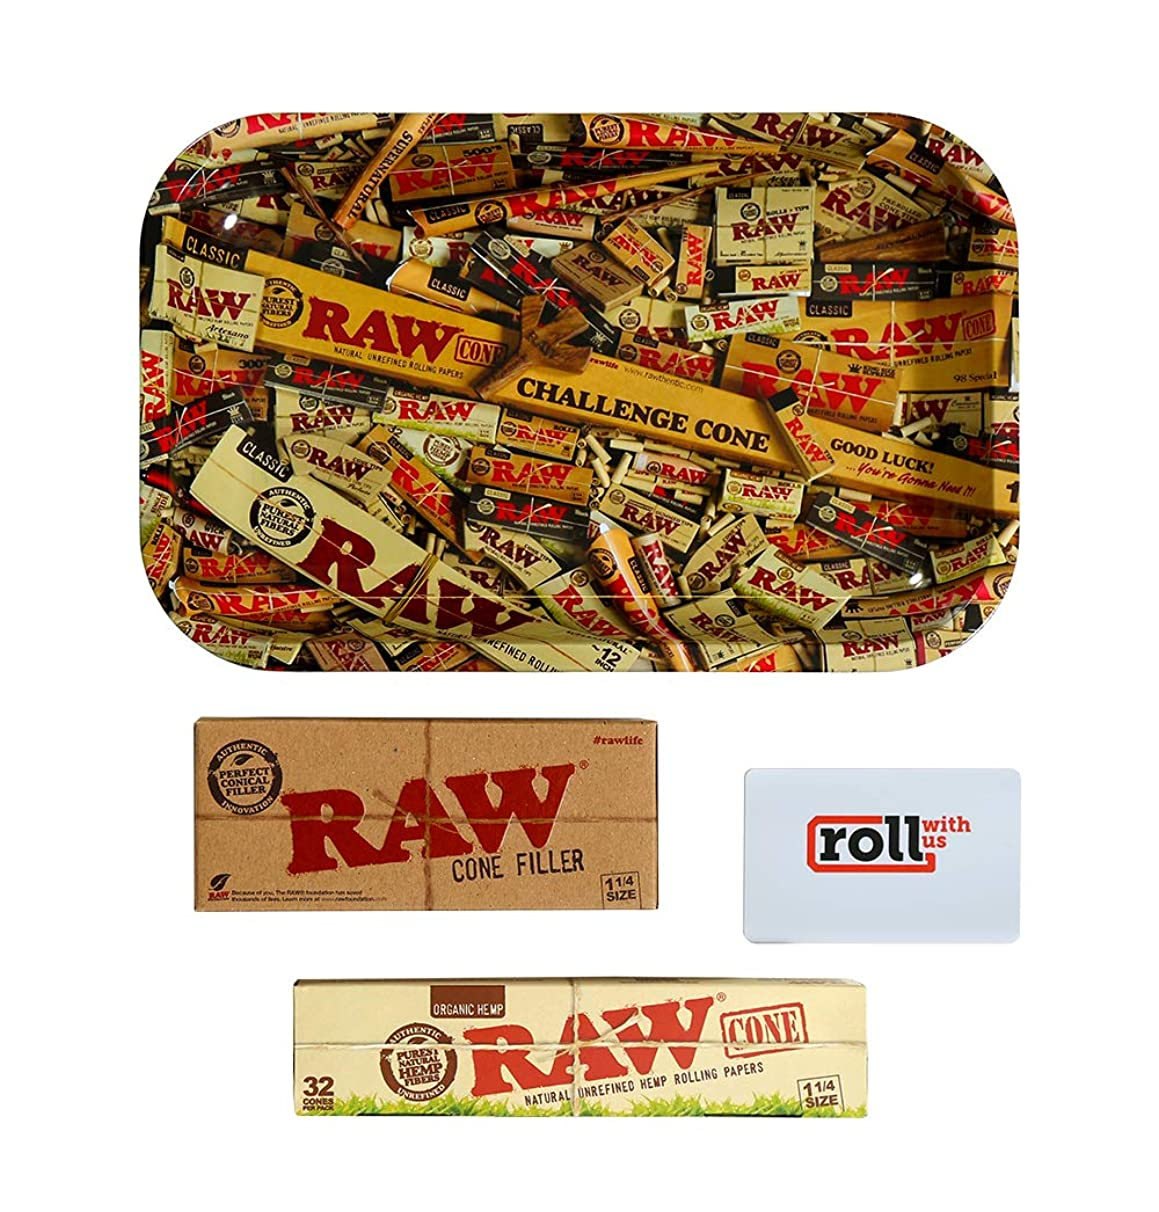 RAW Organic Unrefined Pre-Rolled Cone 32 Pack (1 1/4 Size) Starter Kit: Includes 32 Cones, RAW Loader, Raw Rolling Papers Tray and Roll with Us Scoop Card (Small Tray)